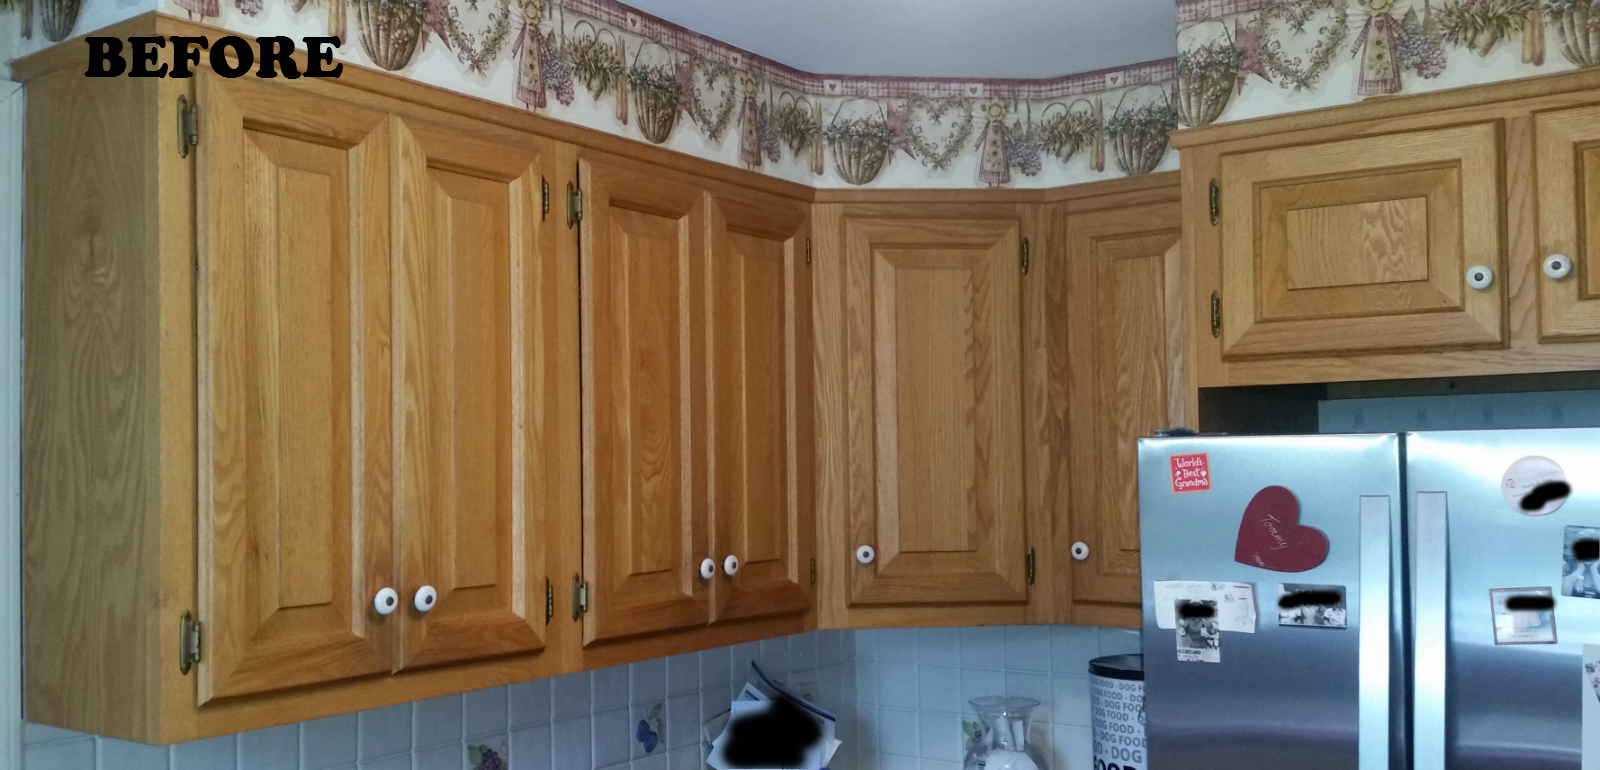 refinishing oak cabinets kitchen cabinet refinishing before and after http kitchencabinet. Black Bedroom Furniture Sets. Home Design Ideas